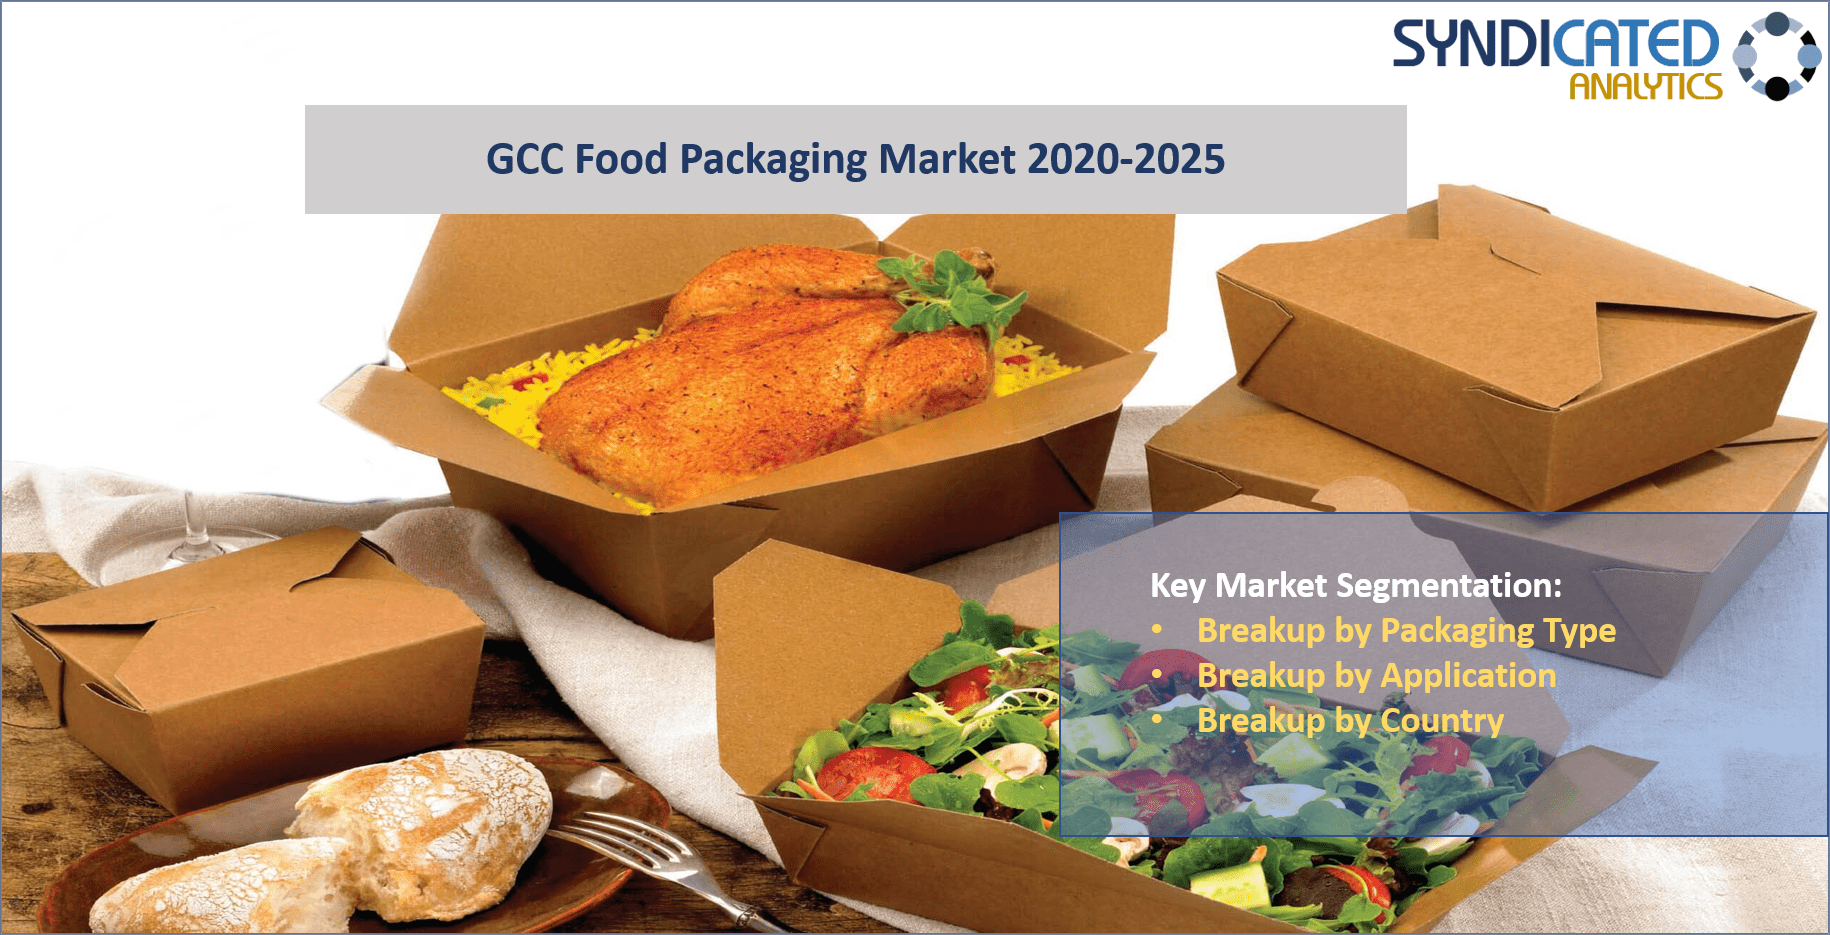 GCC Food Packaging Market Report 2020-2025